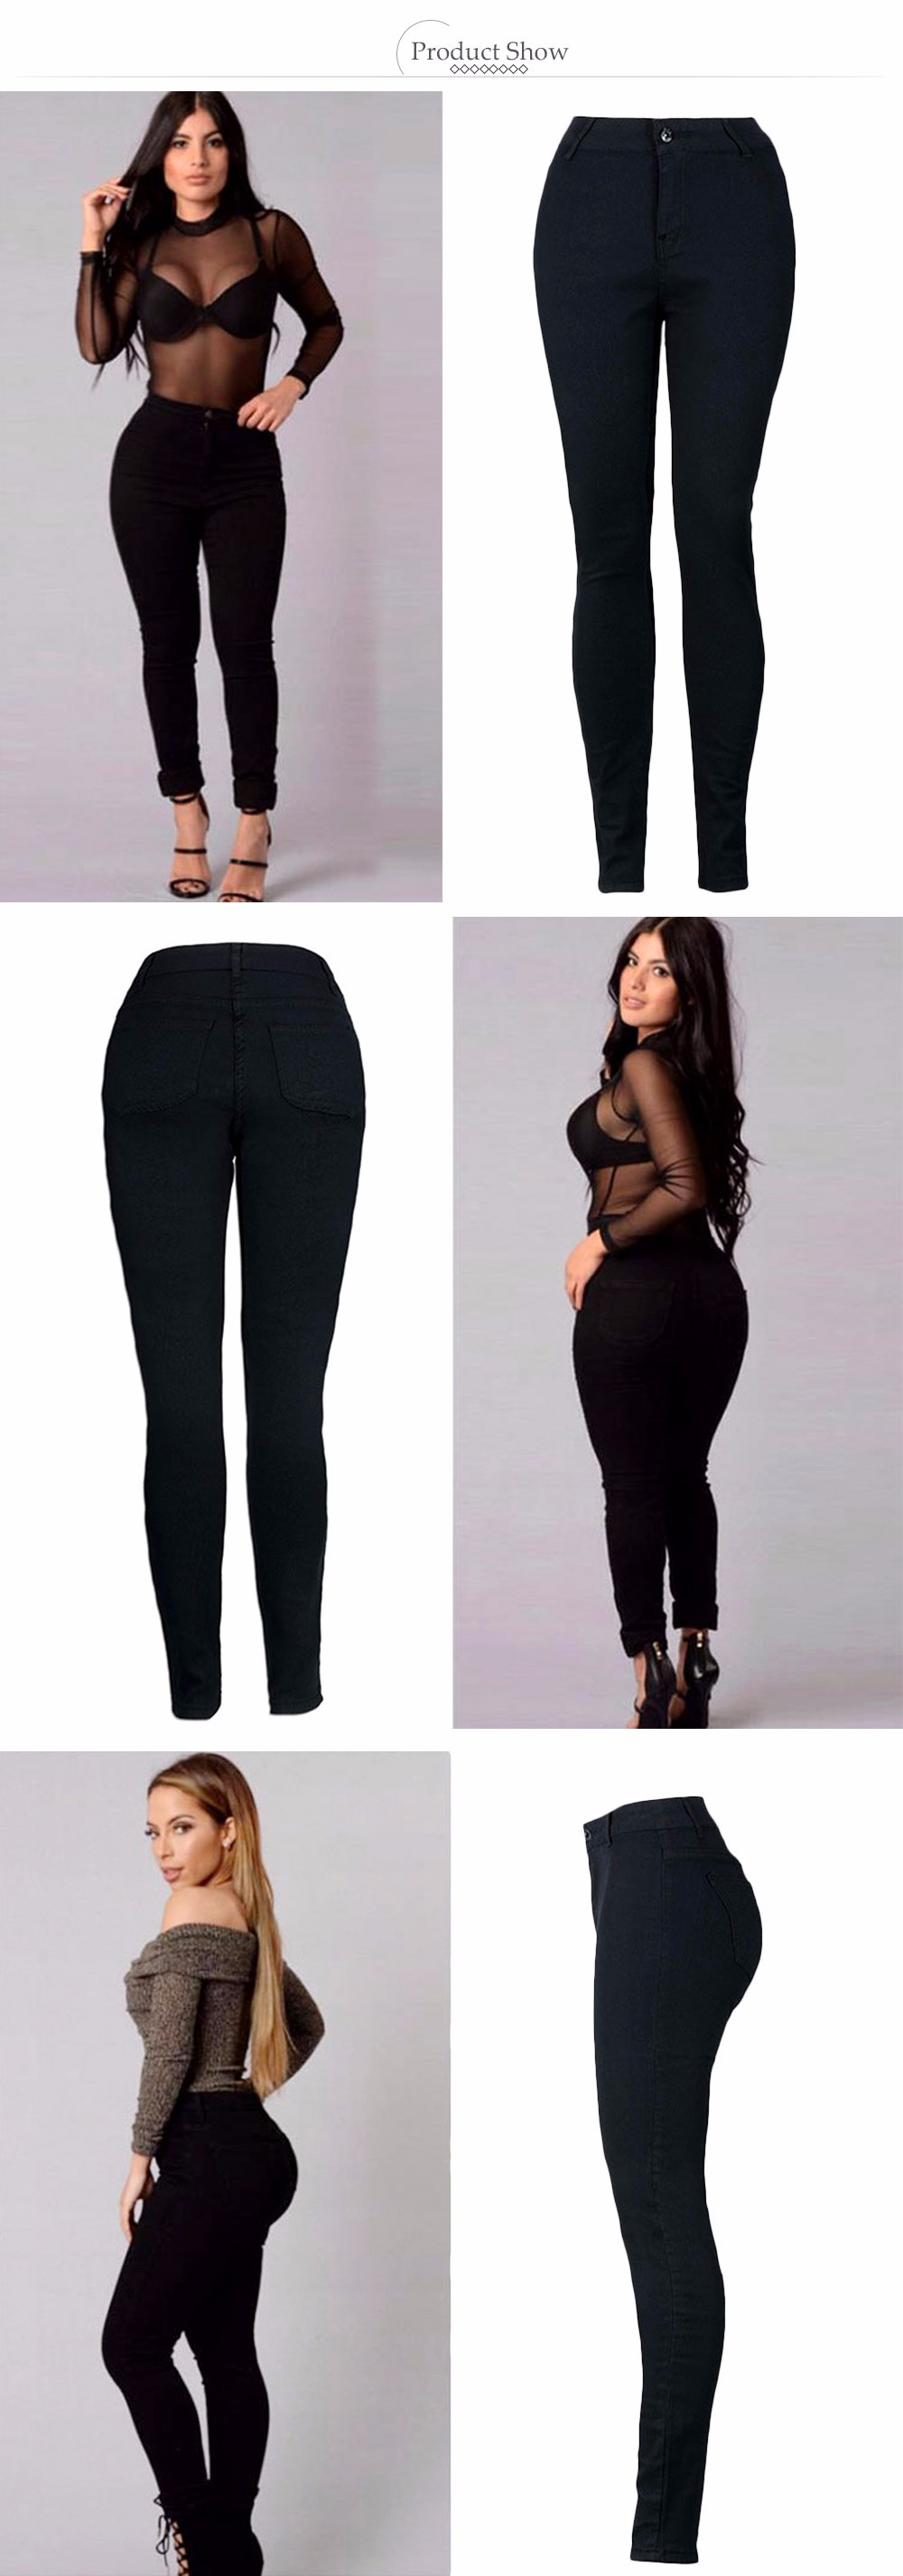 VESTLINDA Pants Women High Waist Elastic Solid Black Pants Denim Regular Sheath Long Pencil Pants Ladies Fashion Zipper Pant 1